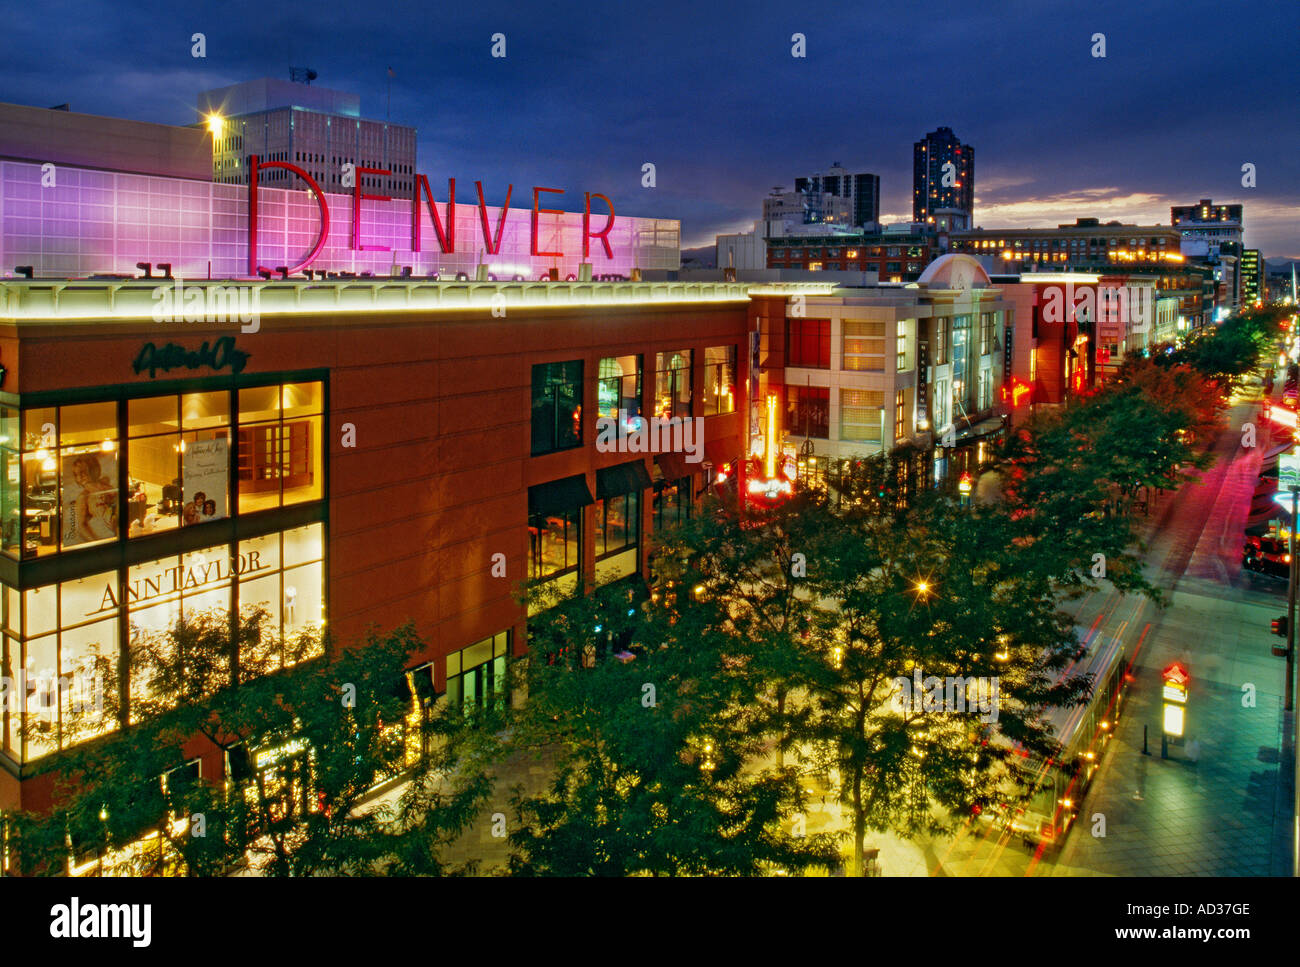 The 16th Street Mall has 42 outdoor cafes and Denver Pavilions, near the south end of the Mall, is a shopping and dining complex with 12 movie theaters and more than two dozen shops and restaurants. At the north end of the Mall, 16th Street continues as a pedestrian path over three bridges connecting downtown to Commons Park and LoHi, a hip.